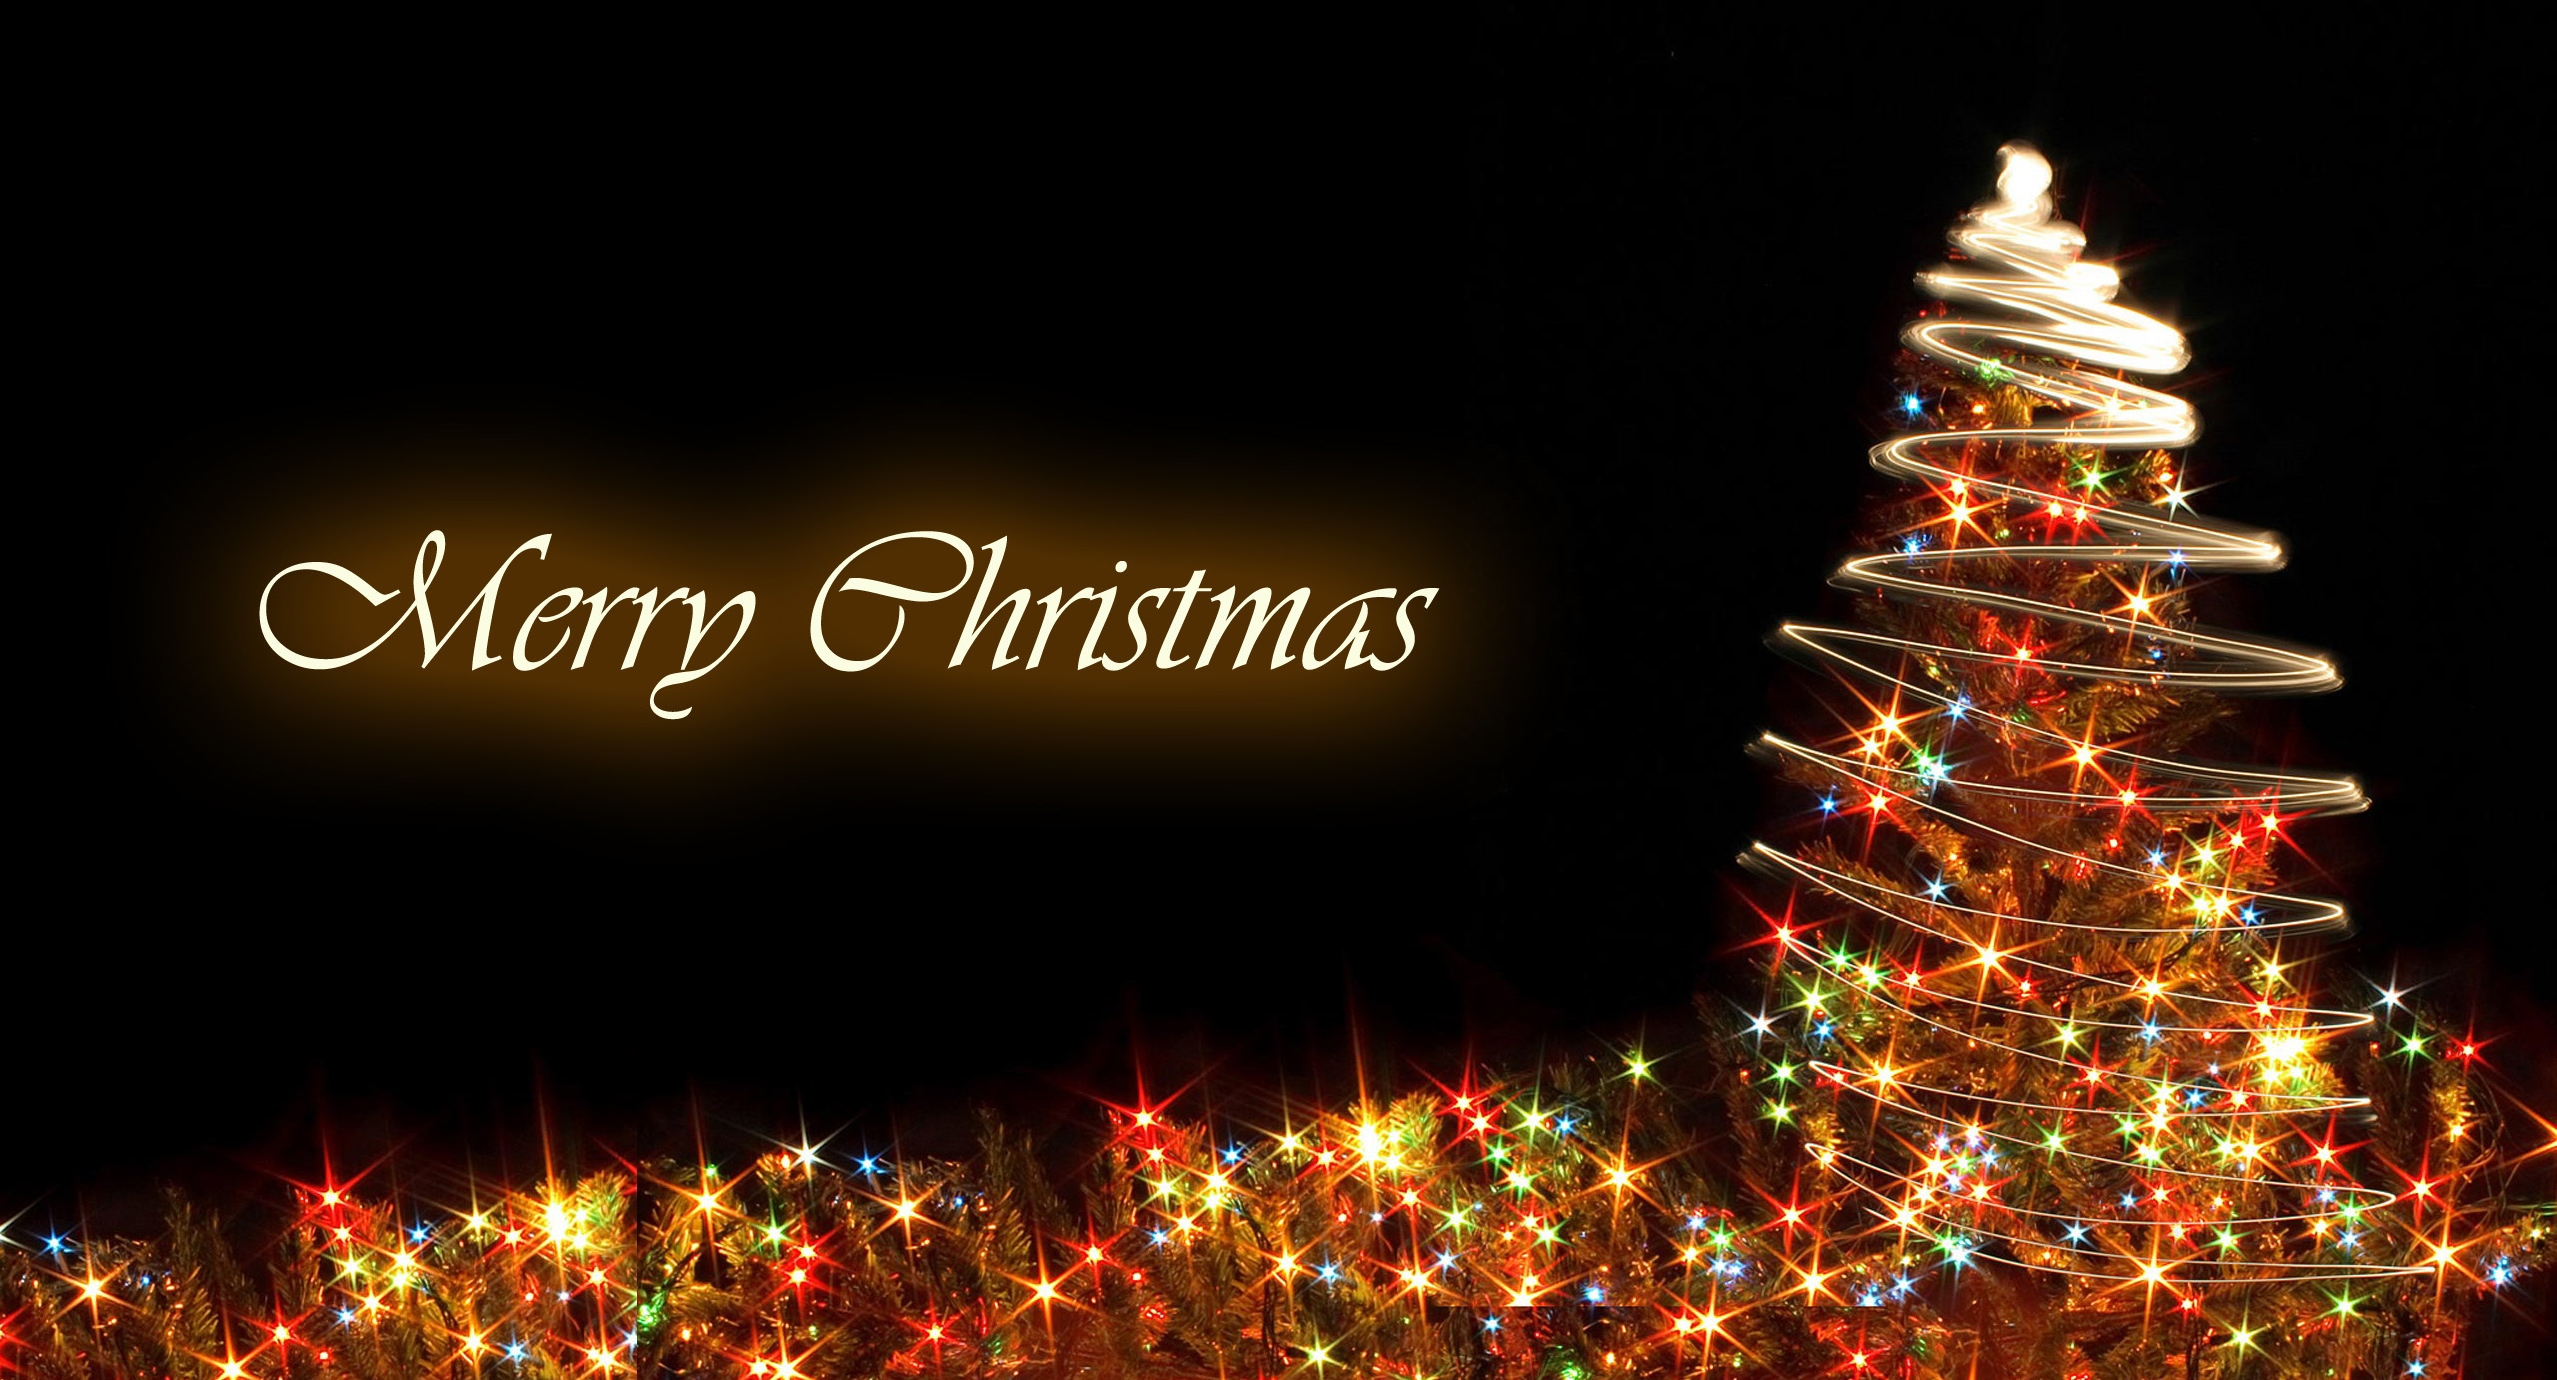 Merry Christmas Greetings Wishes Awesome Hd Wallpaper